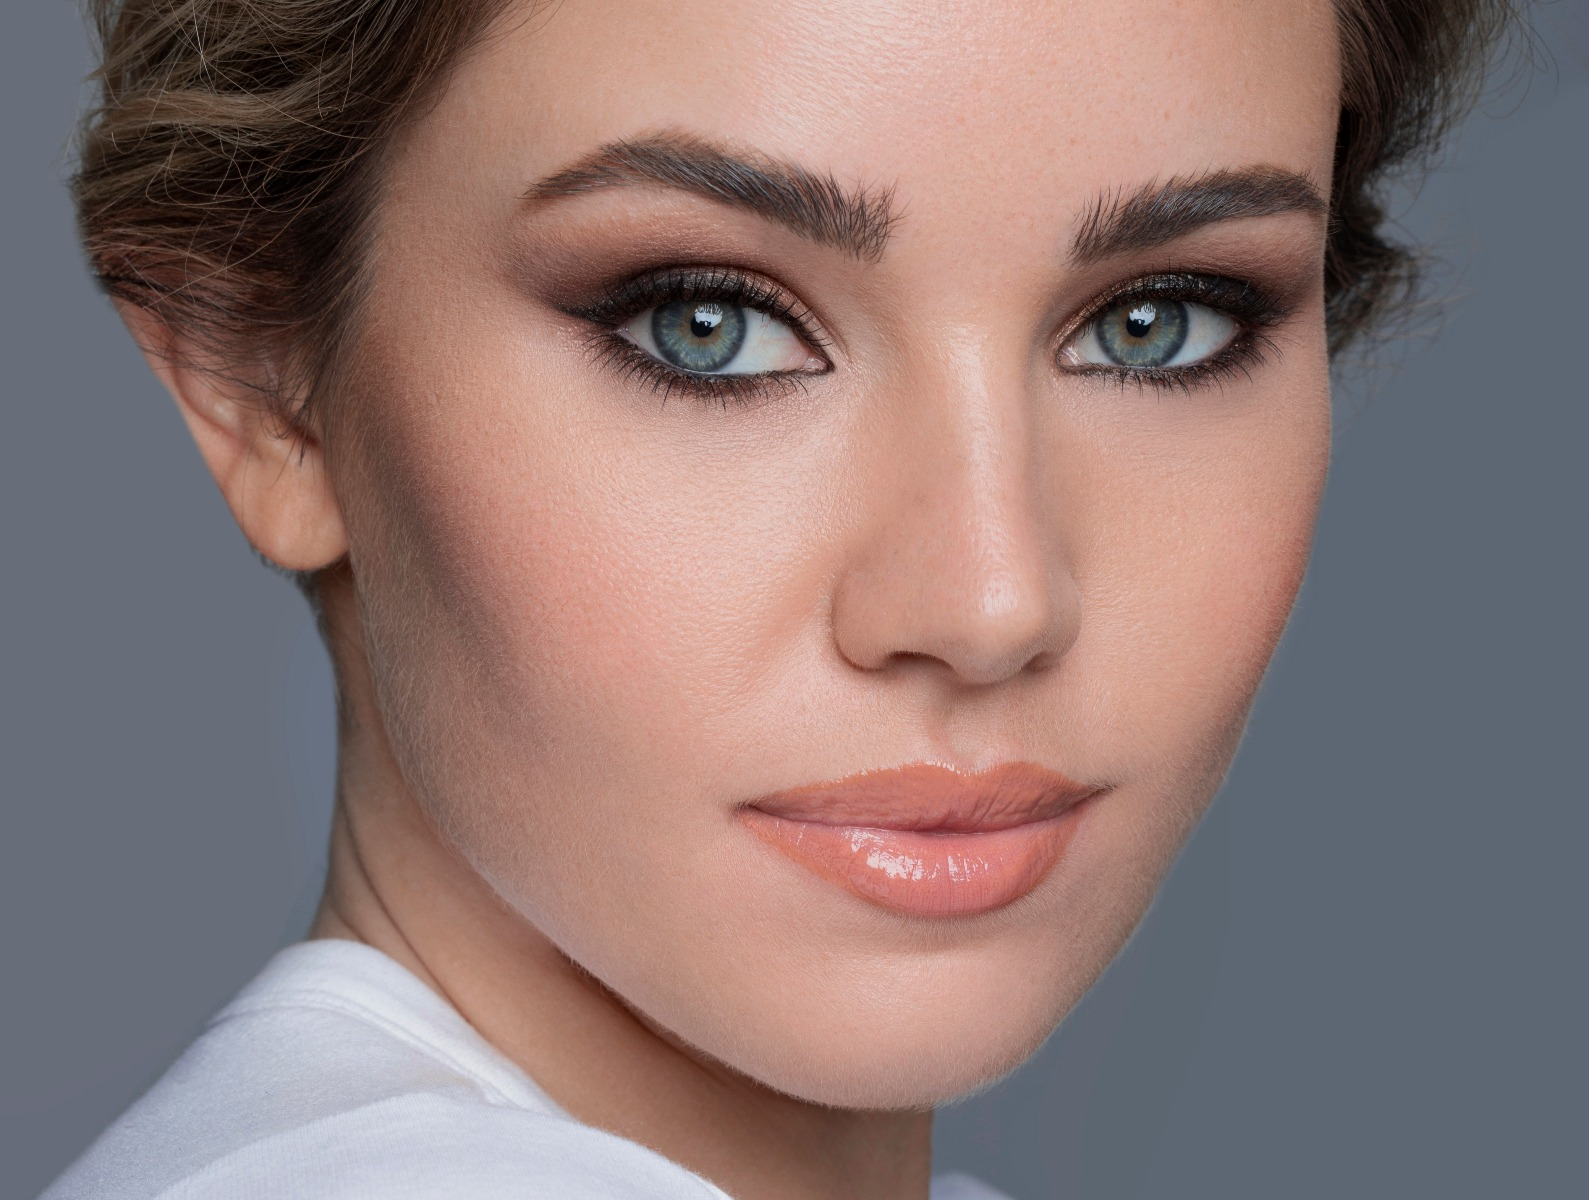 Makeup tips for a rounder face